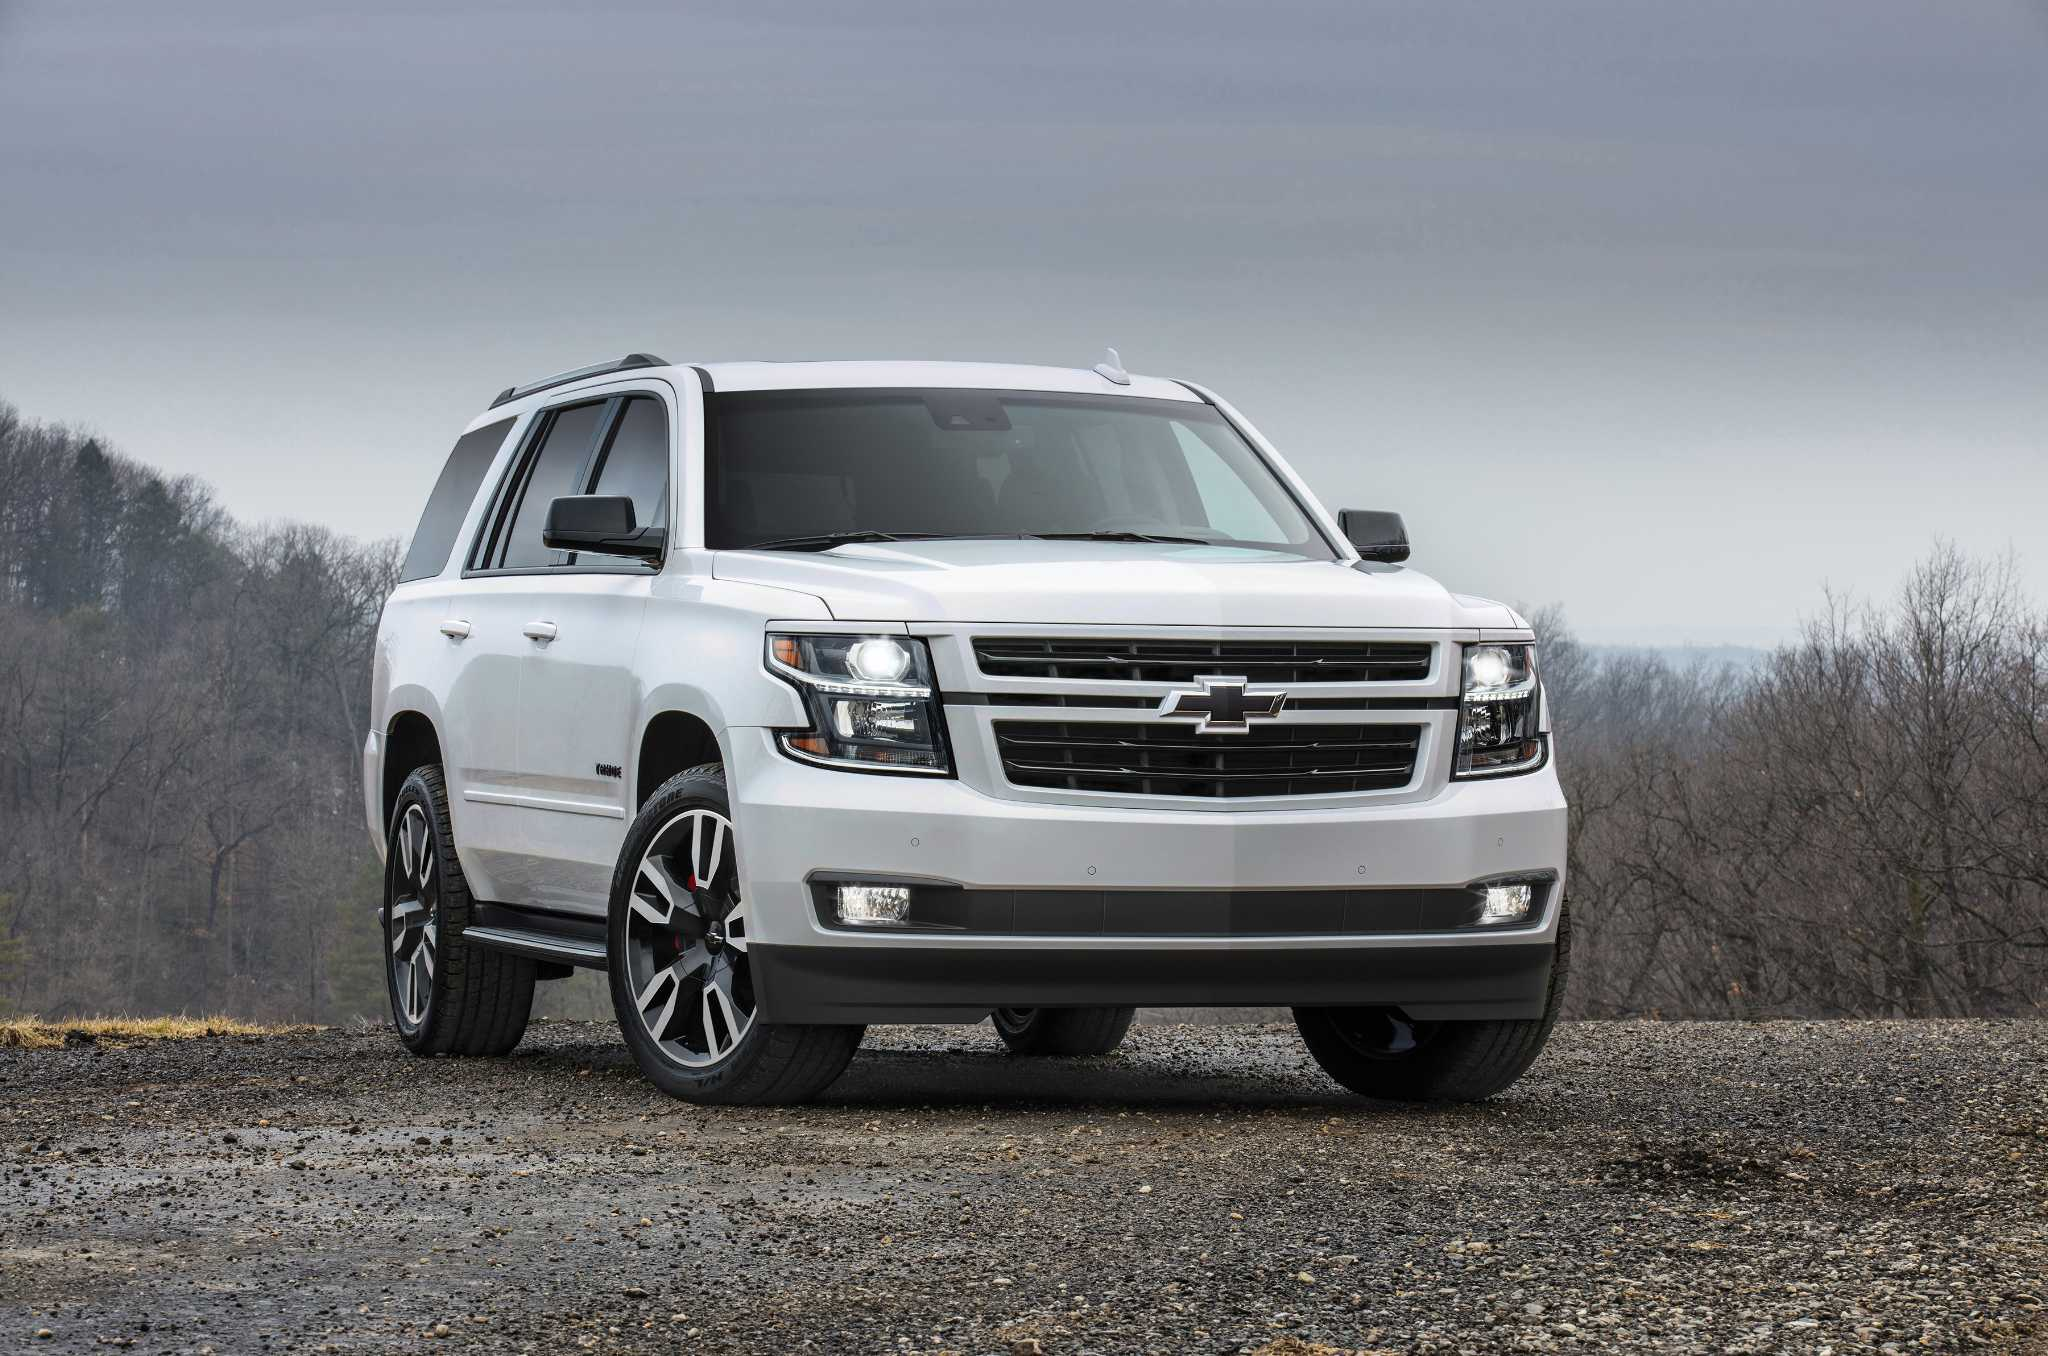 Fortified Tahoe: Chevy finally offers 6.2-liter V8 in its star SUV